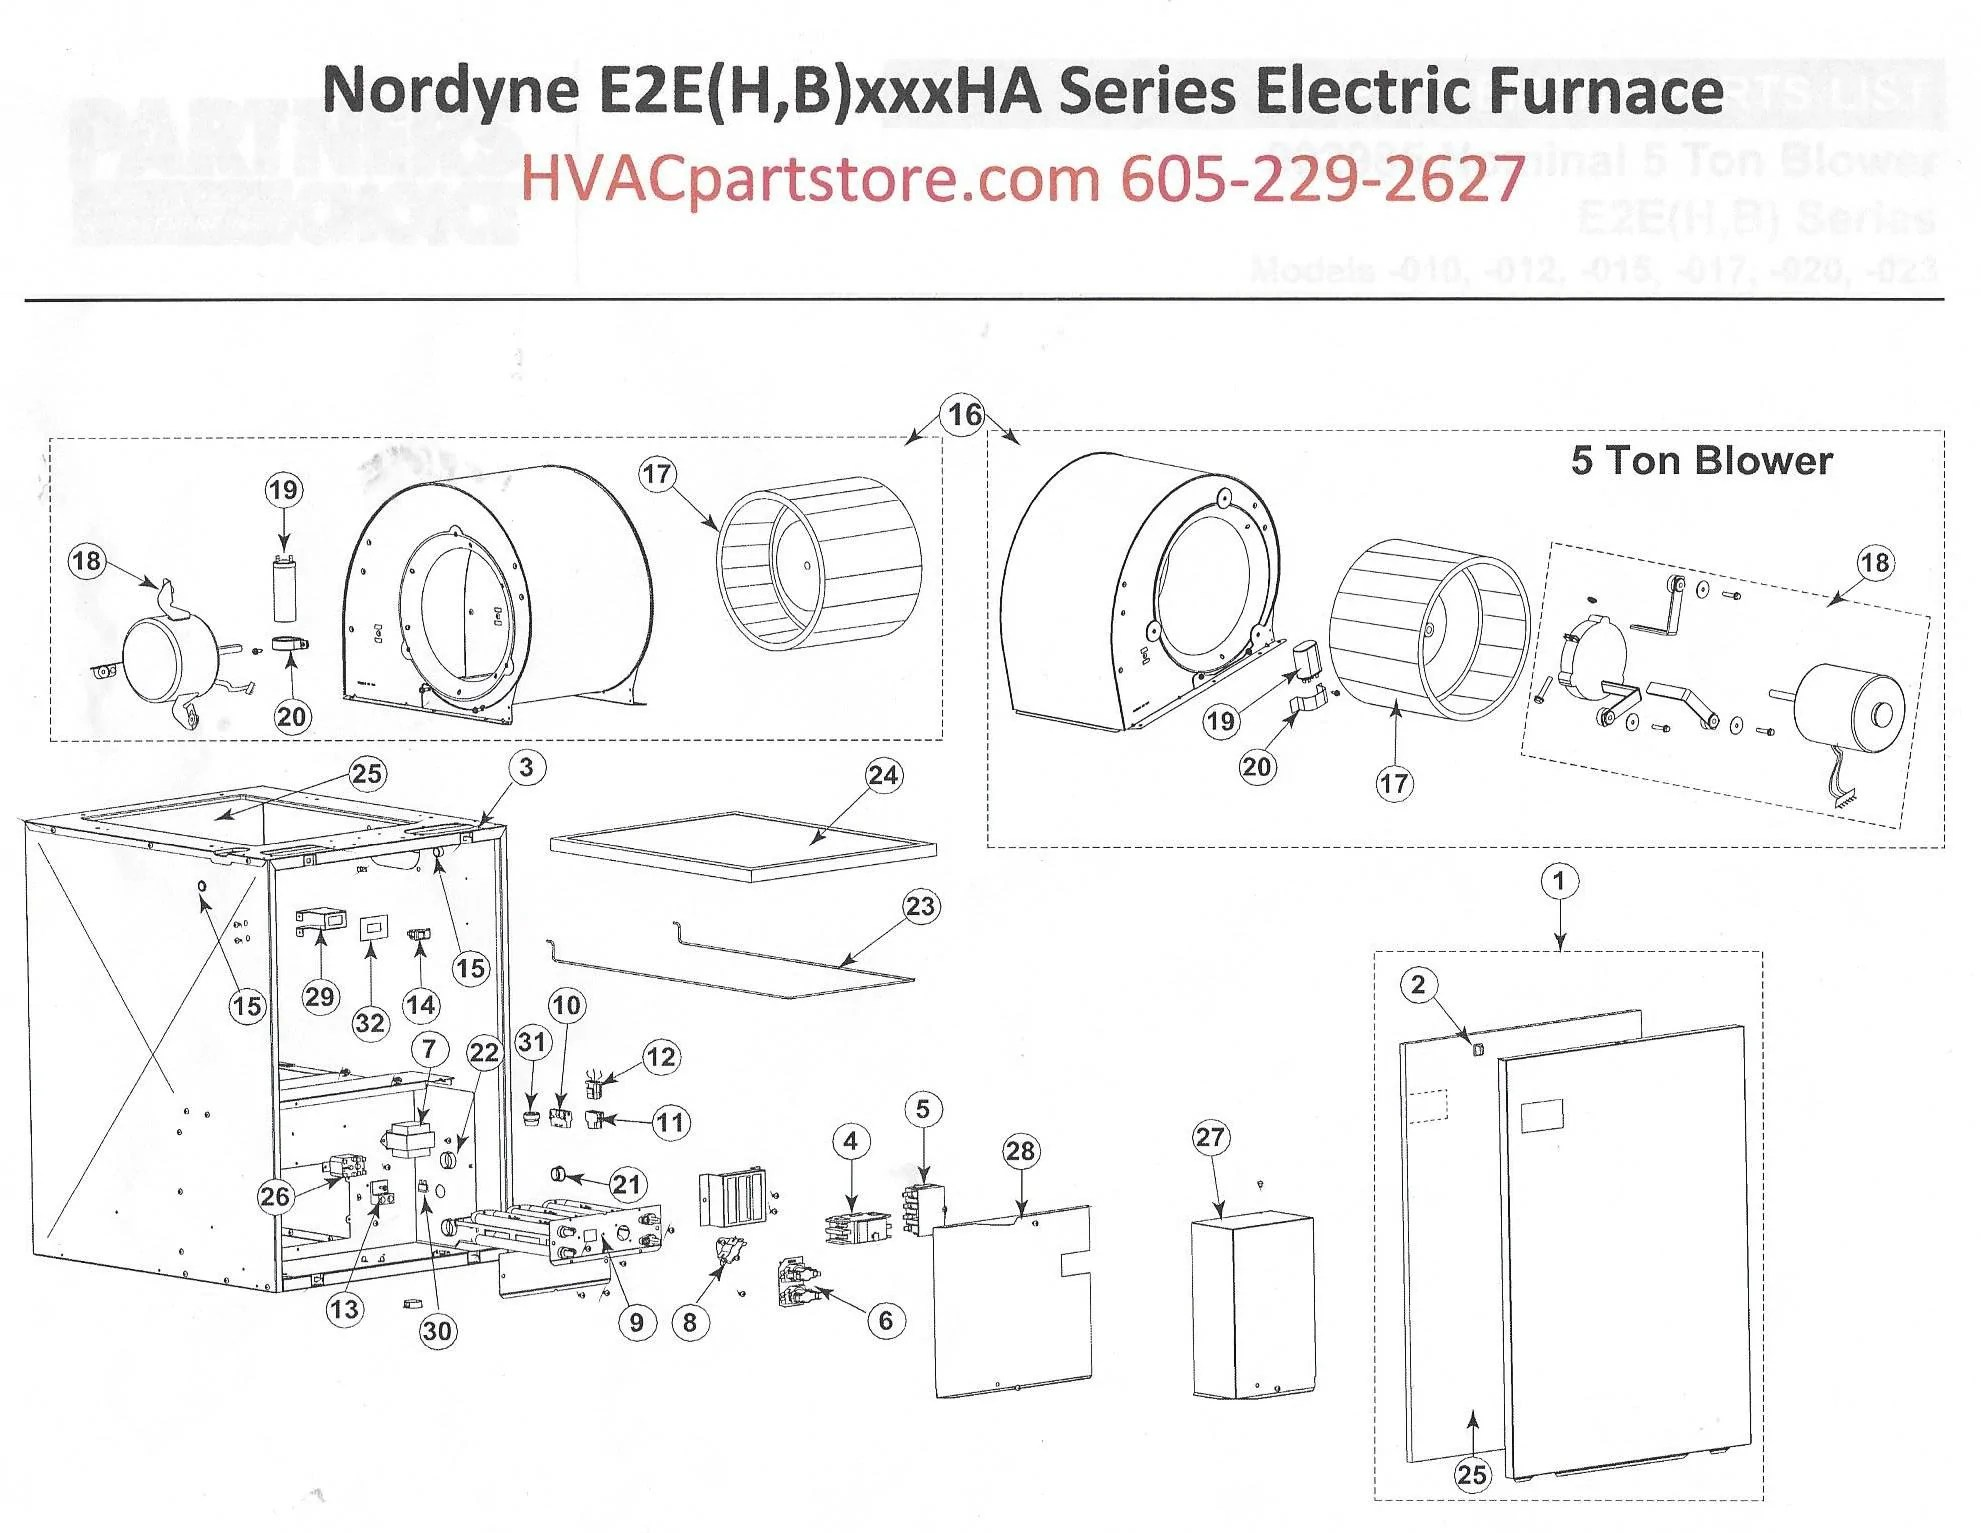 medium resolution of  3f20 40b2 8e78 670eeb0ab556 9778179831979465996 eb23a furnace wiring diagram coleman gandul 45 77 79 nordyne furnace diagram nordyne ac units